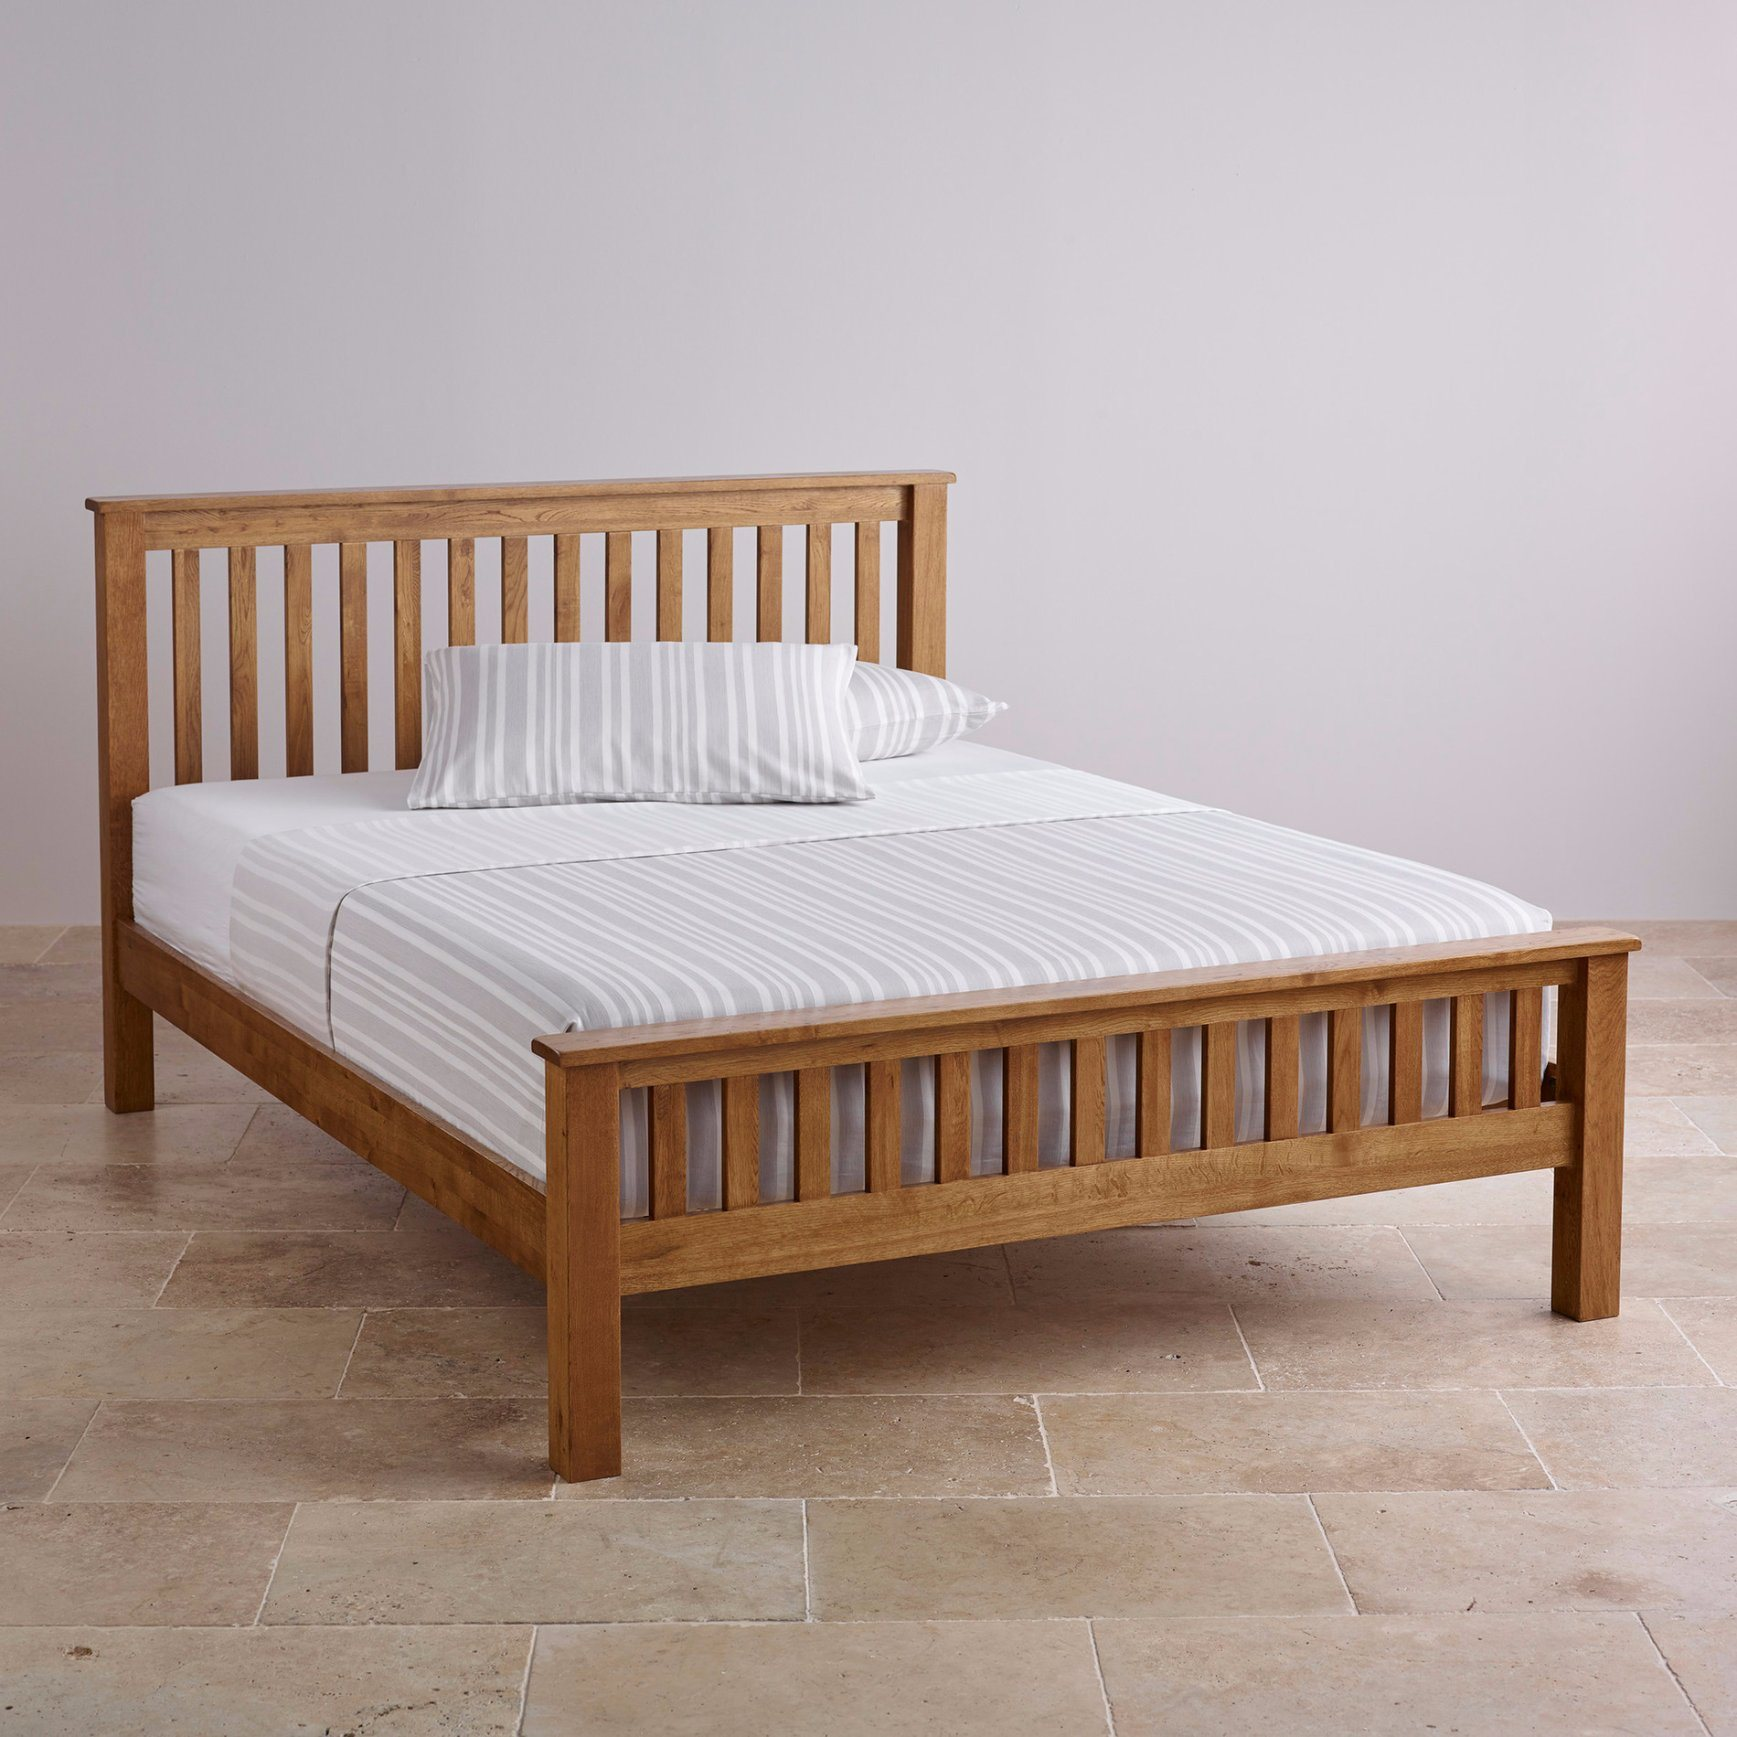 Double Size Bed Hot Item Rustic Vintage Oak Solid Wood Single Double King Queen Size Bed